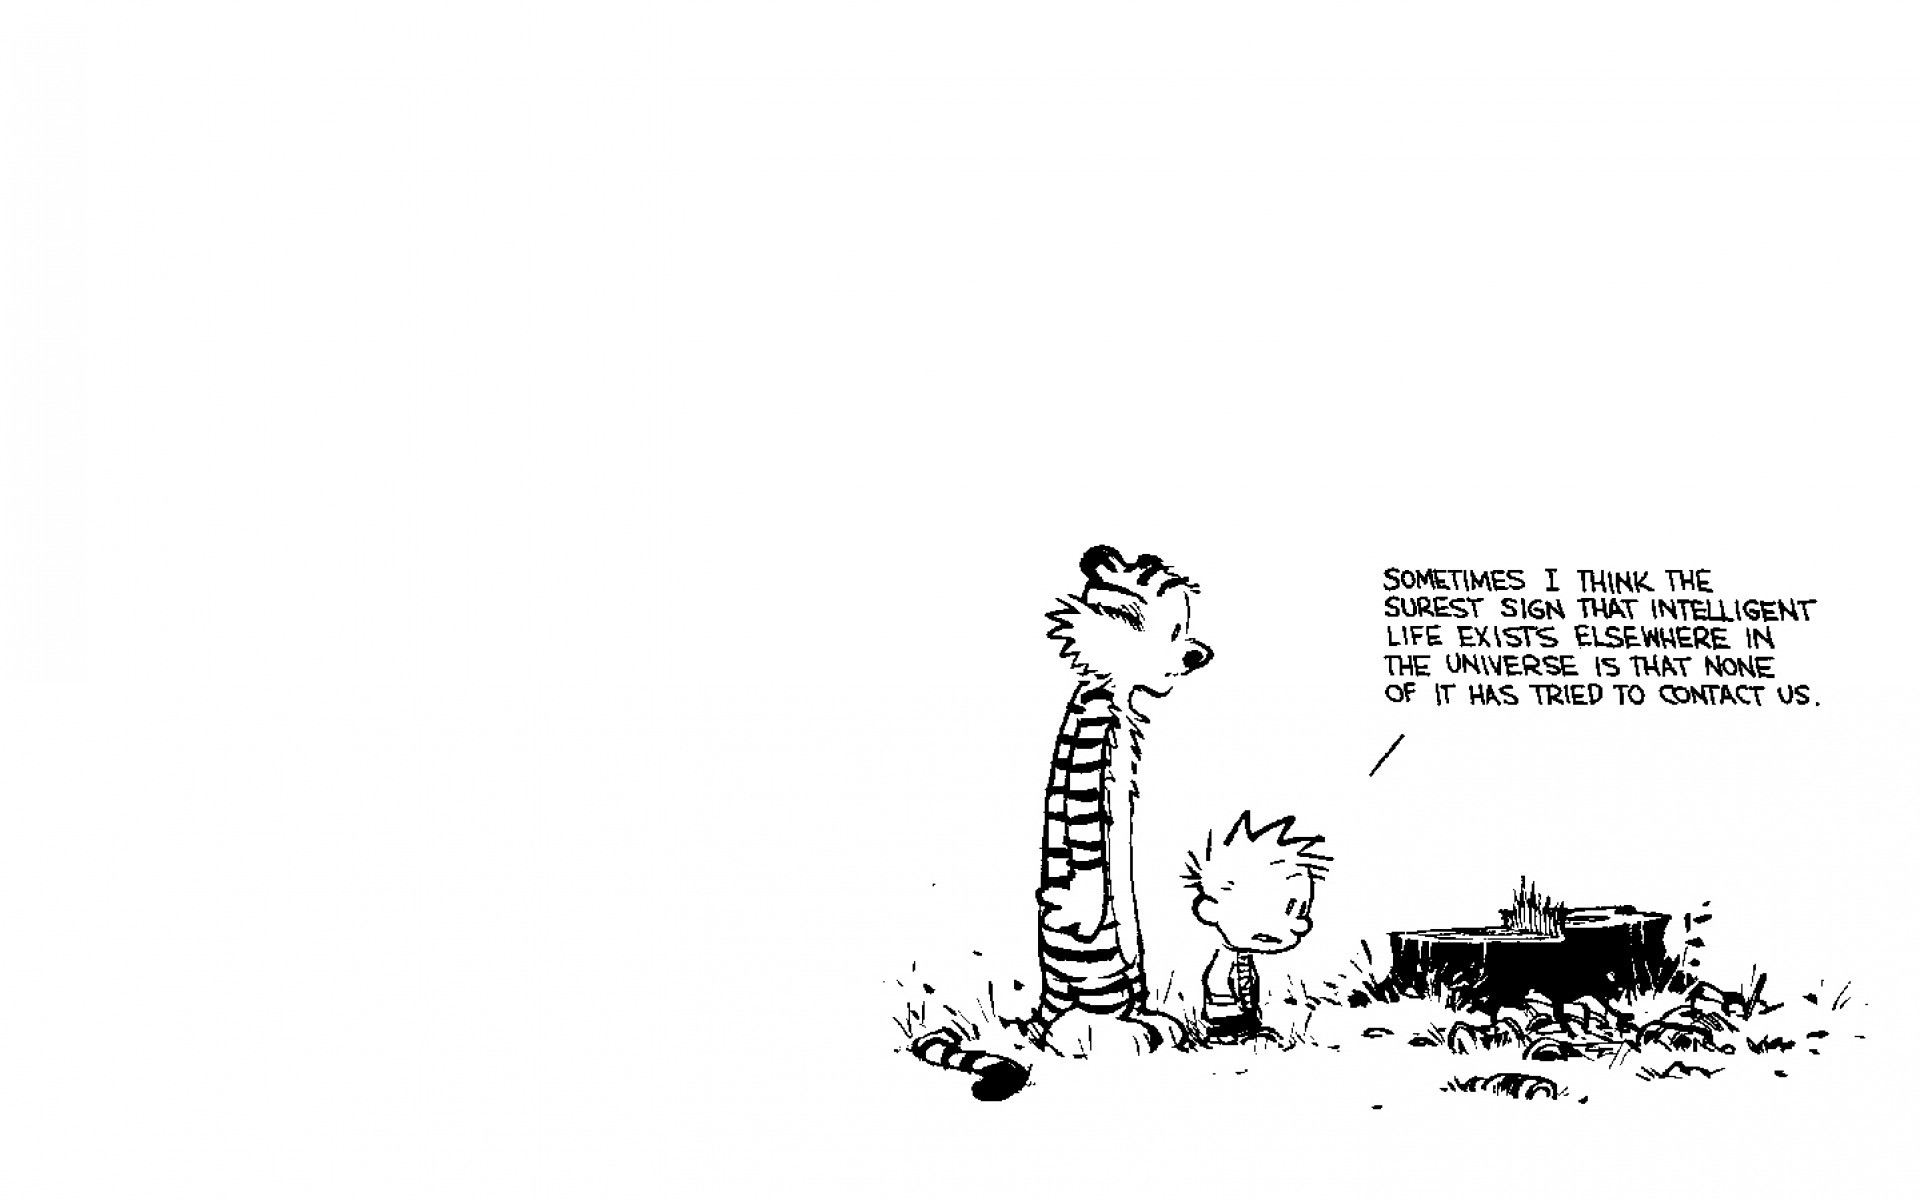 Calvin and Hobbes Wallpaper 1920x1080 72 images 1920x1200